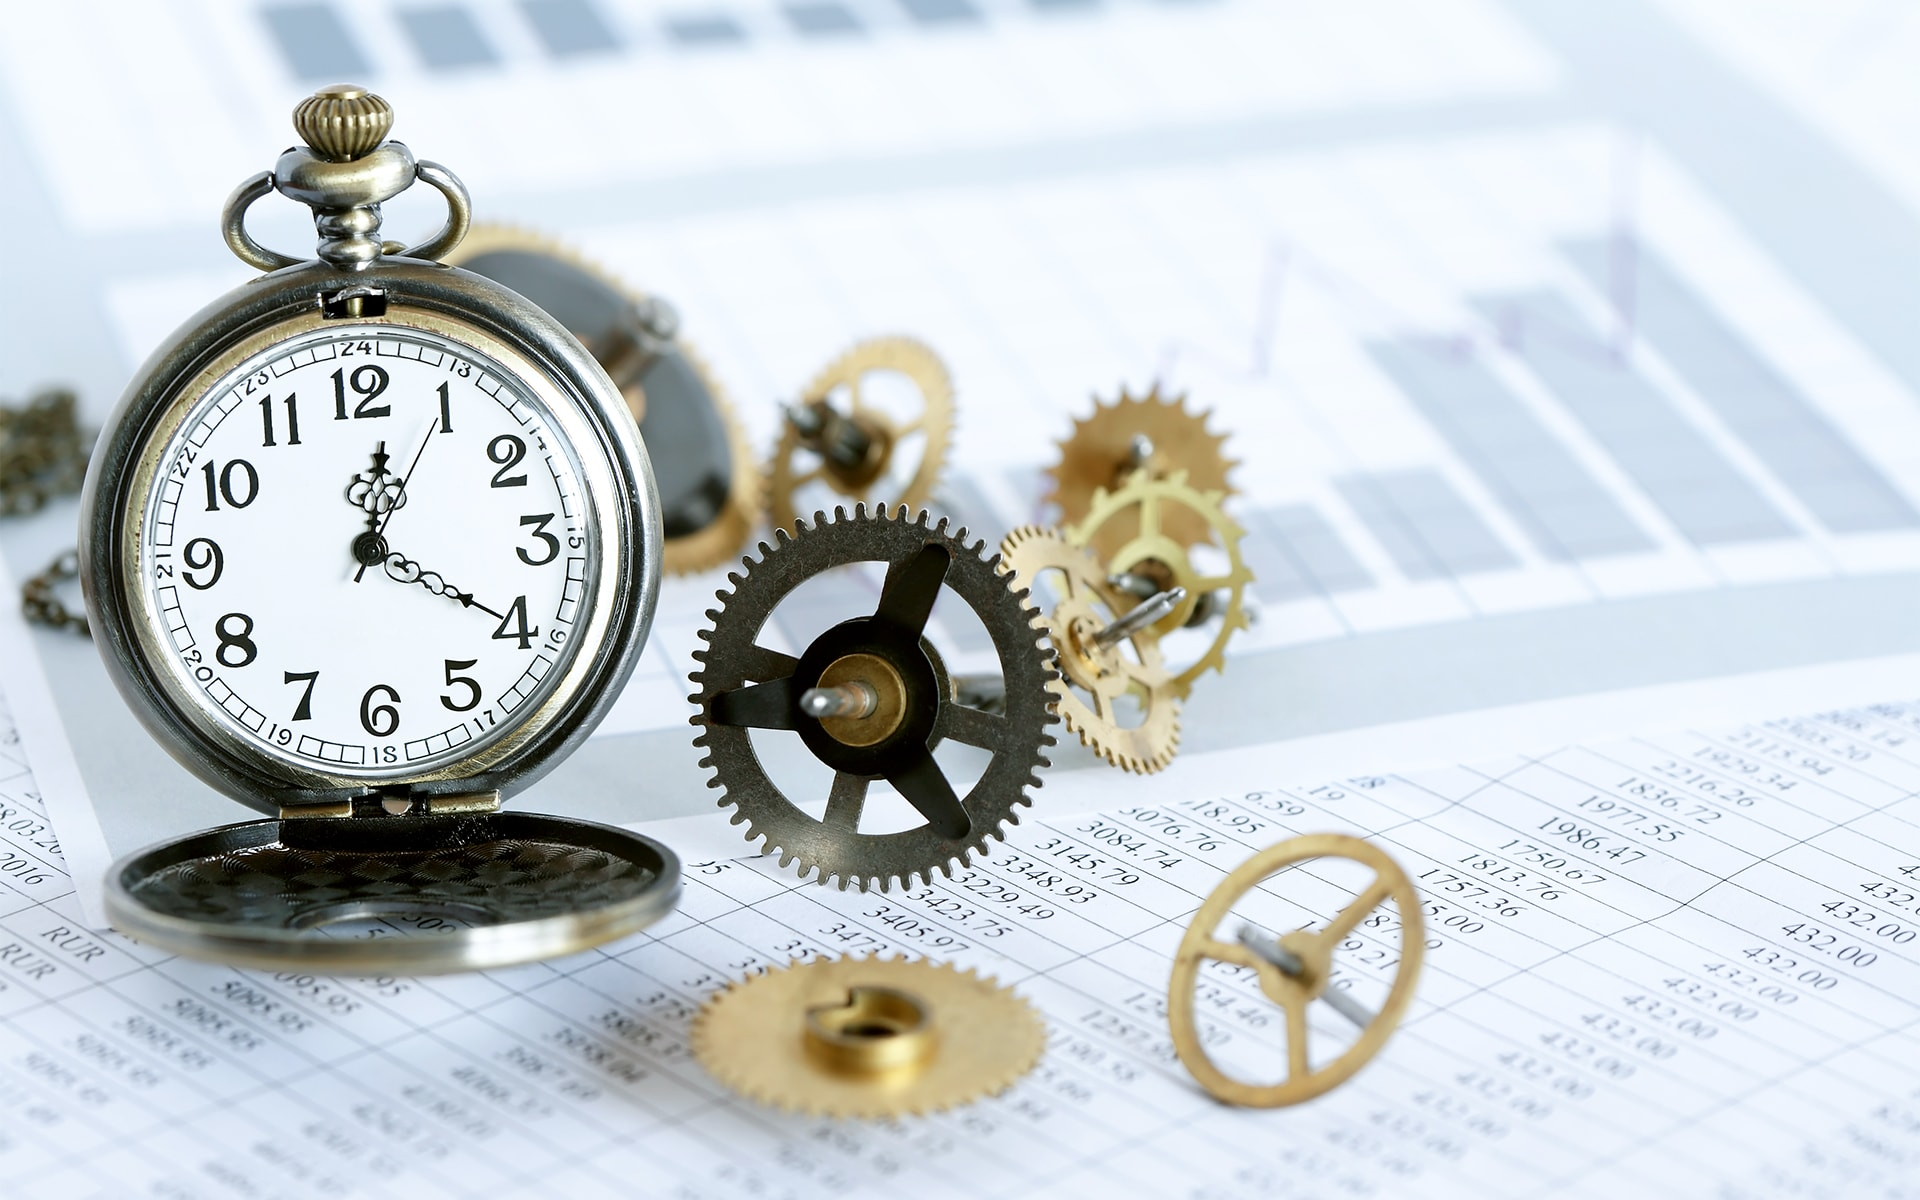 Workflow management with spreadsheets - a watch in parts